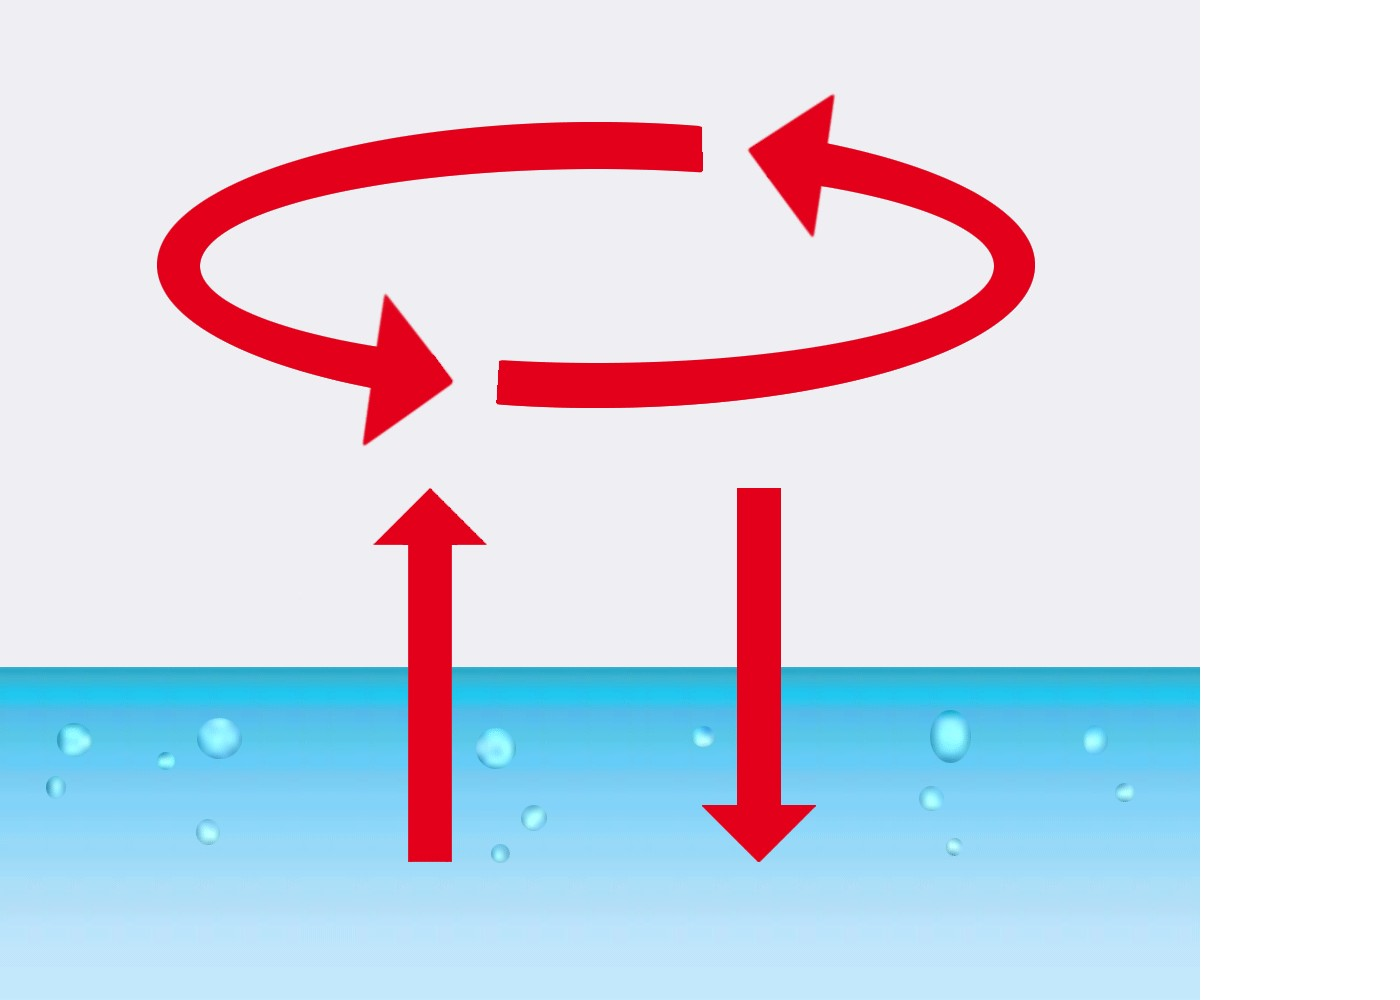 Red arrow icon referring to Step 3 of the metal impregnation process